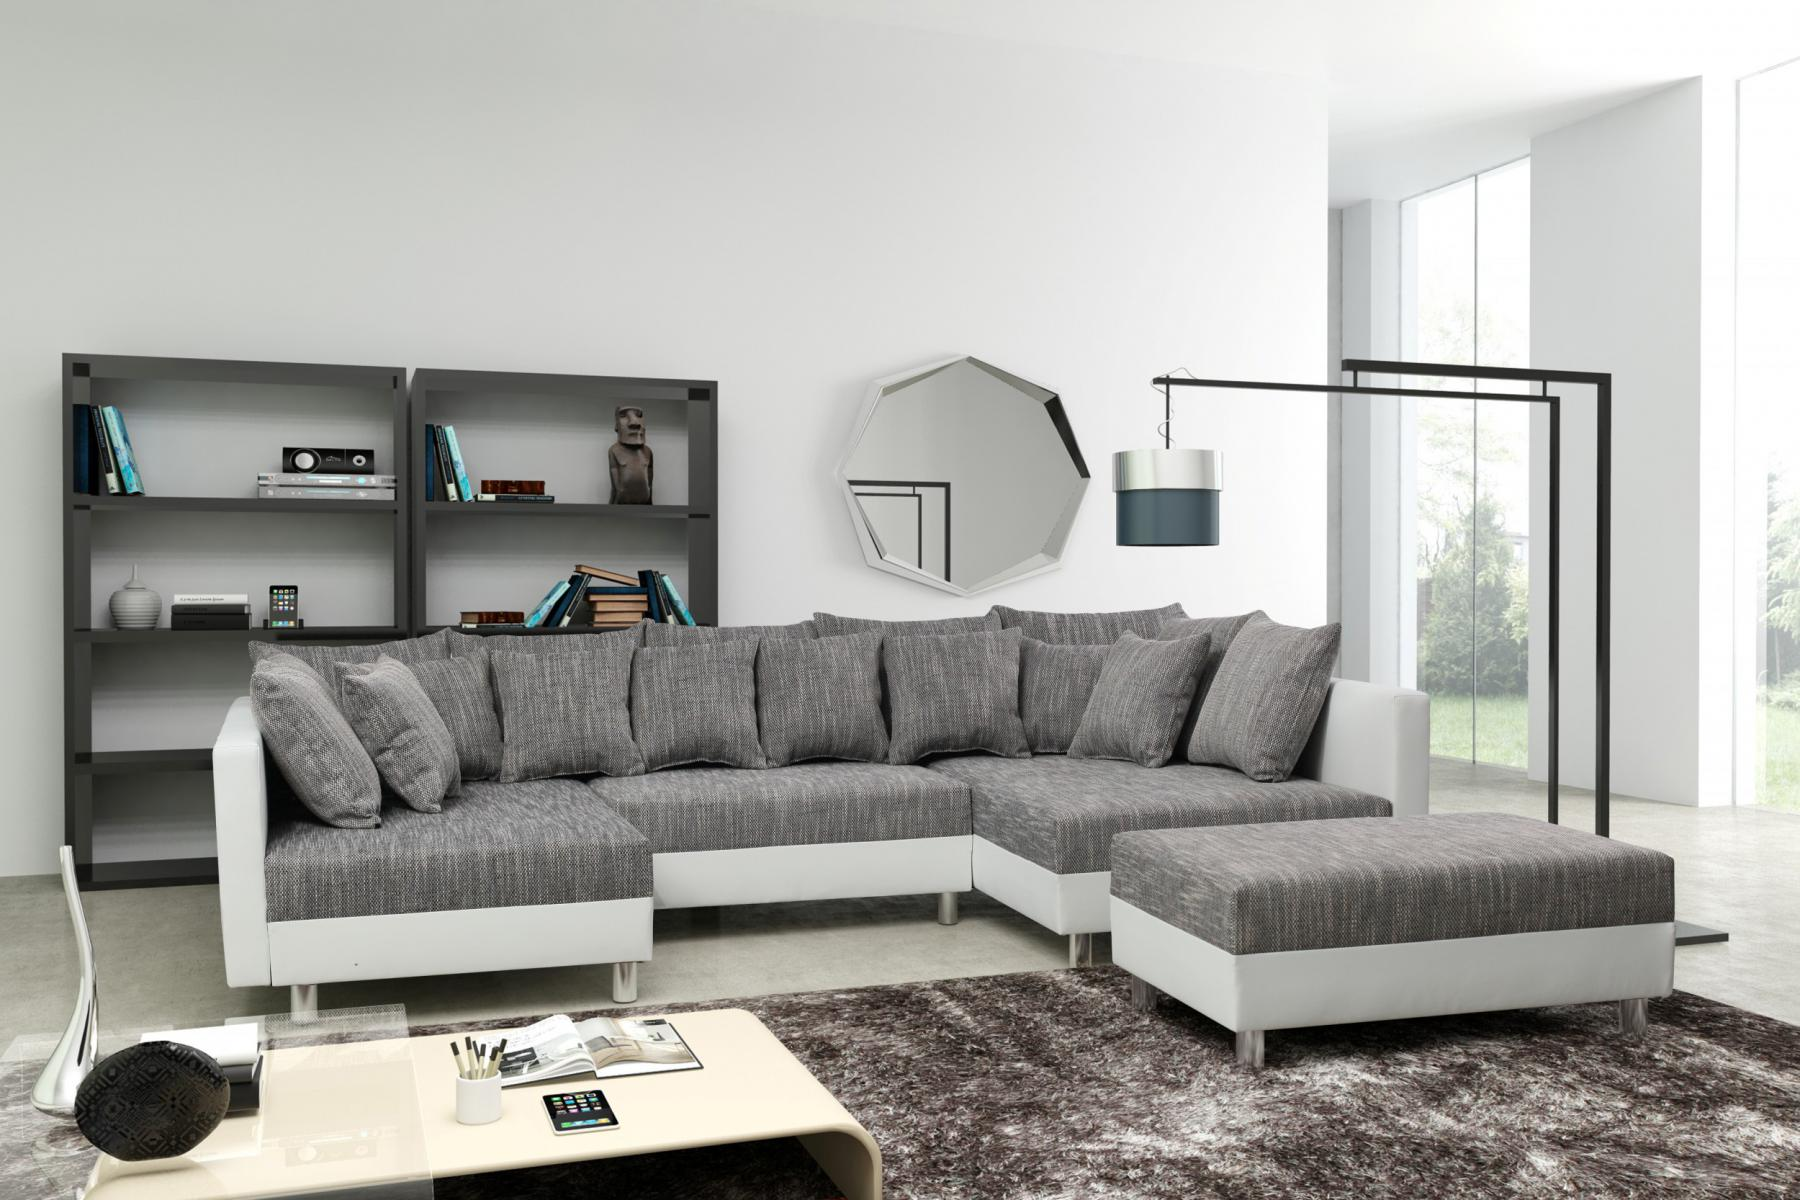 sofa couch ecksofa eckcouch in weiss hellgrau eckcouch mit hocker minsk xxl kaufen bei. Black Bedroom Furniture Sets. Home Design Ideas